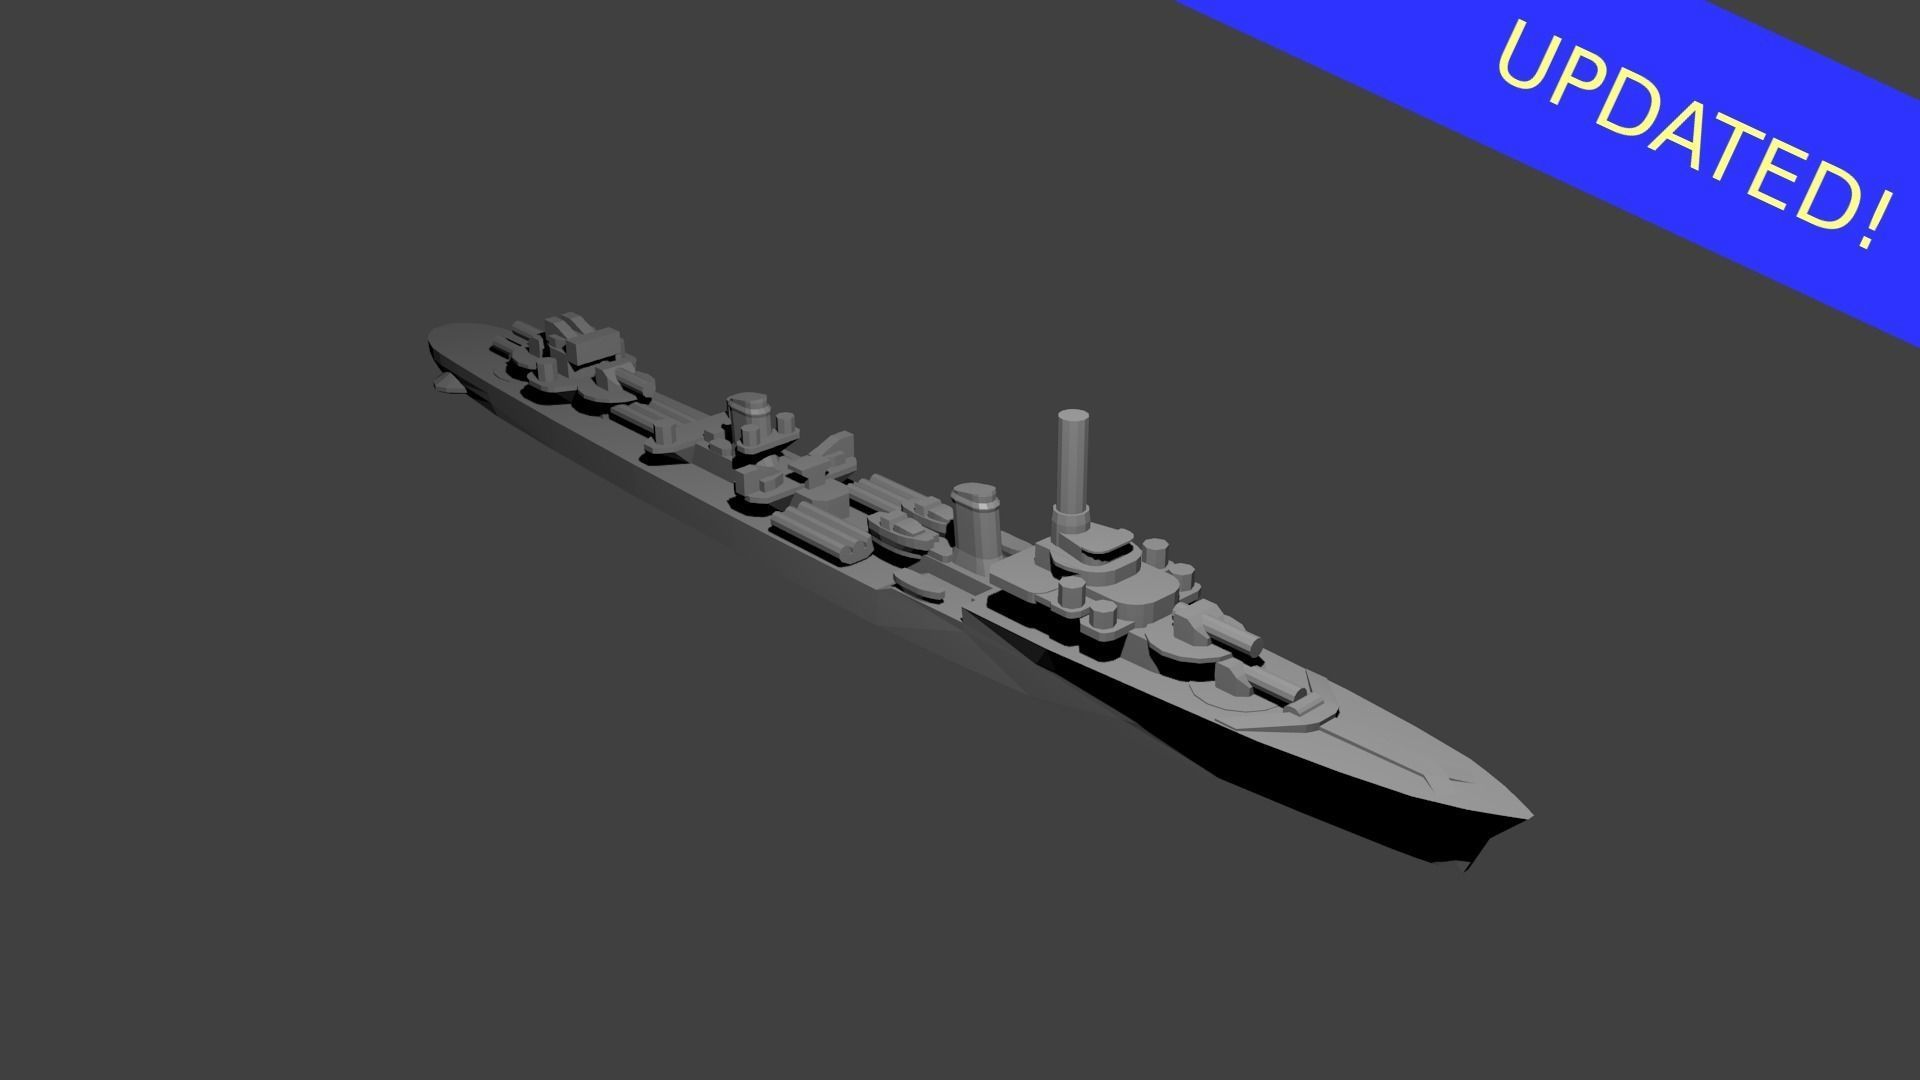 French Le Fantasque Class Destroyer Warship